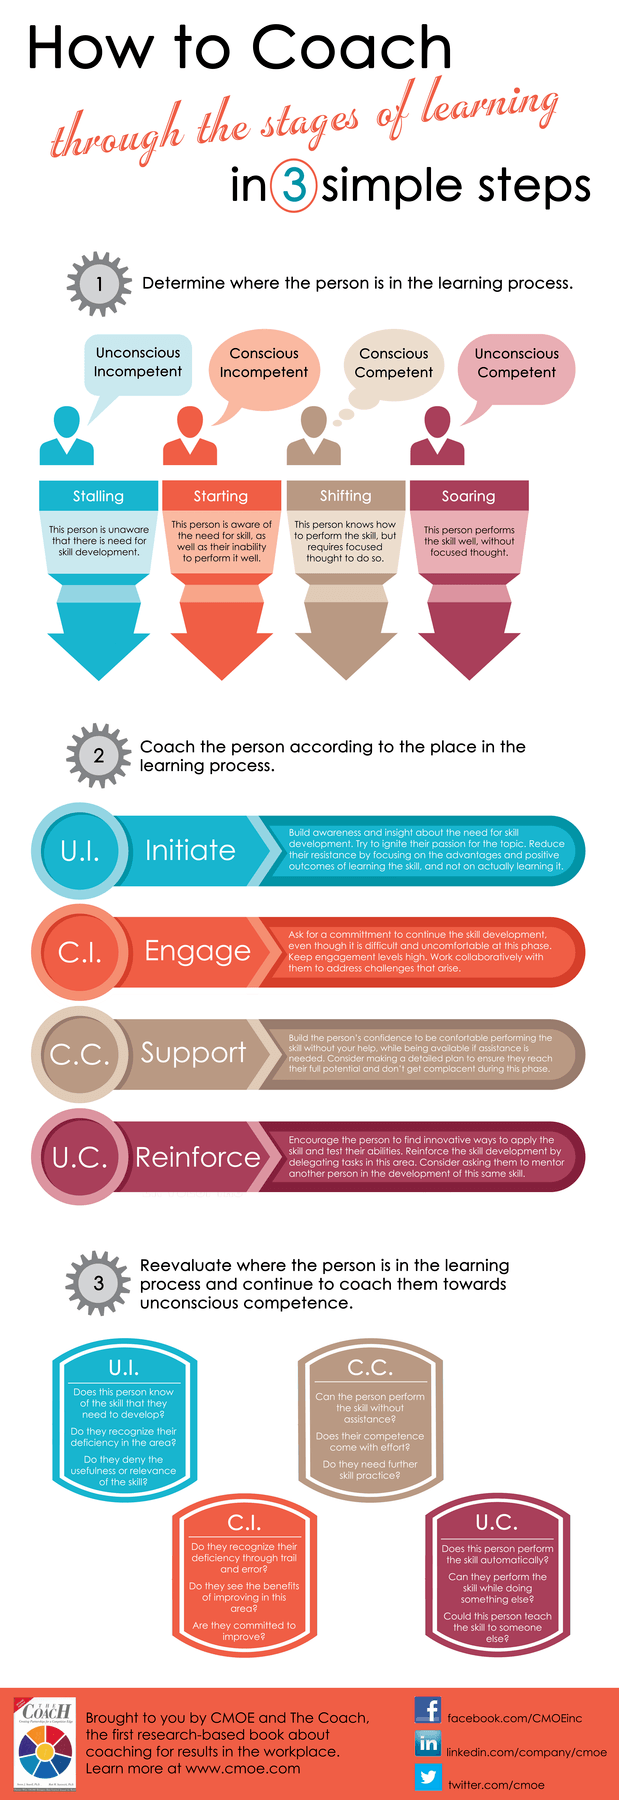 How-To-Coach-Through-The-Stages-of-Learning-Infographic